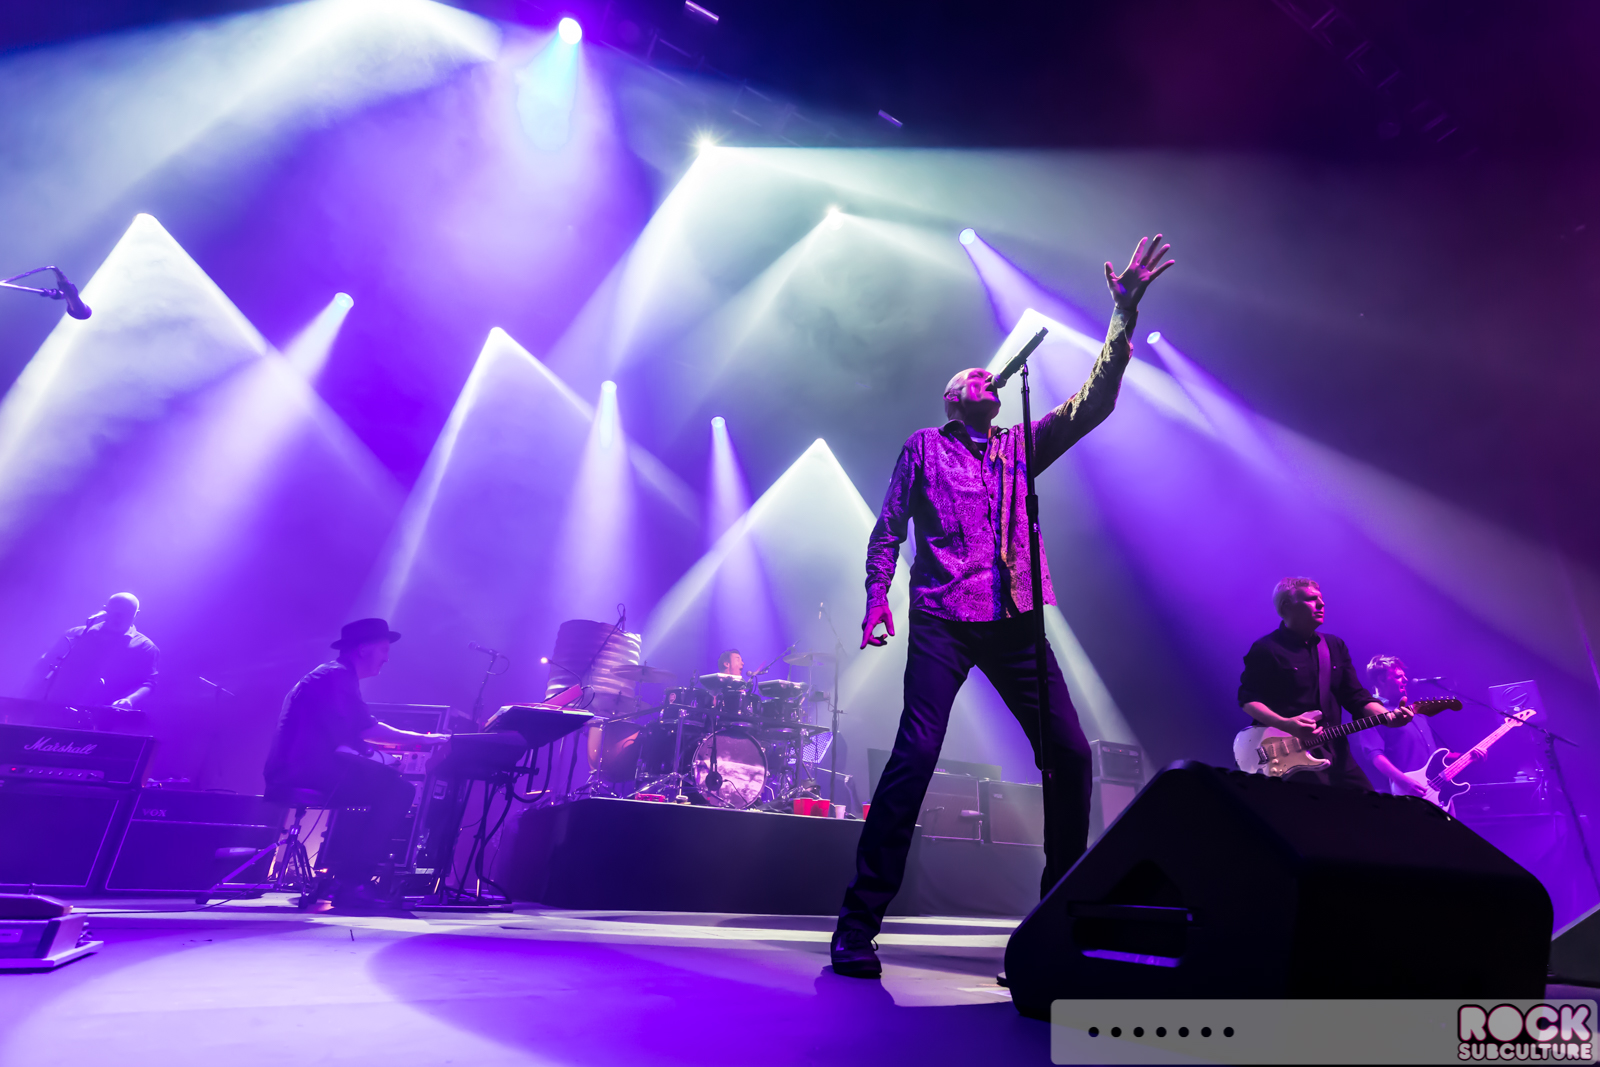 Pro Tips for Live Concert Photography (2): 3 Tips for ... |Live Concert Photography